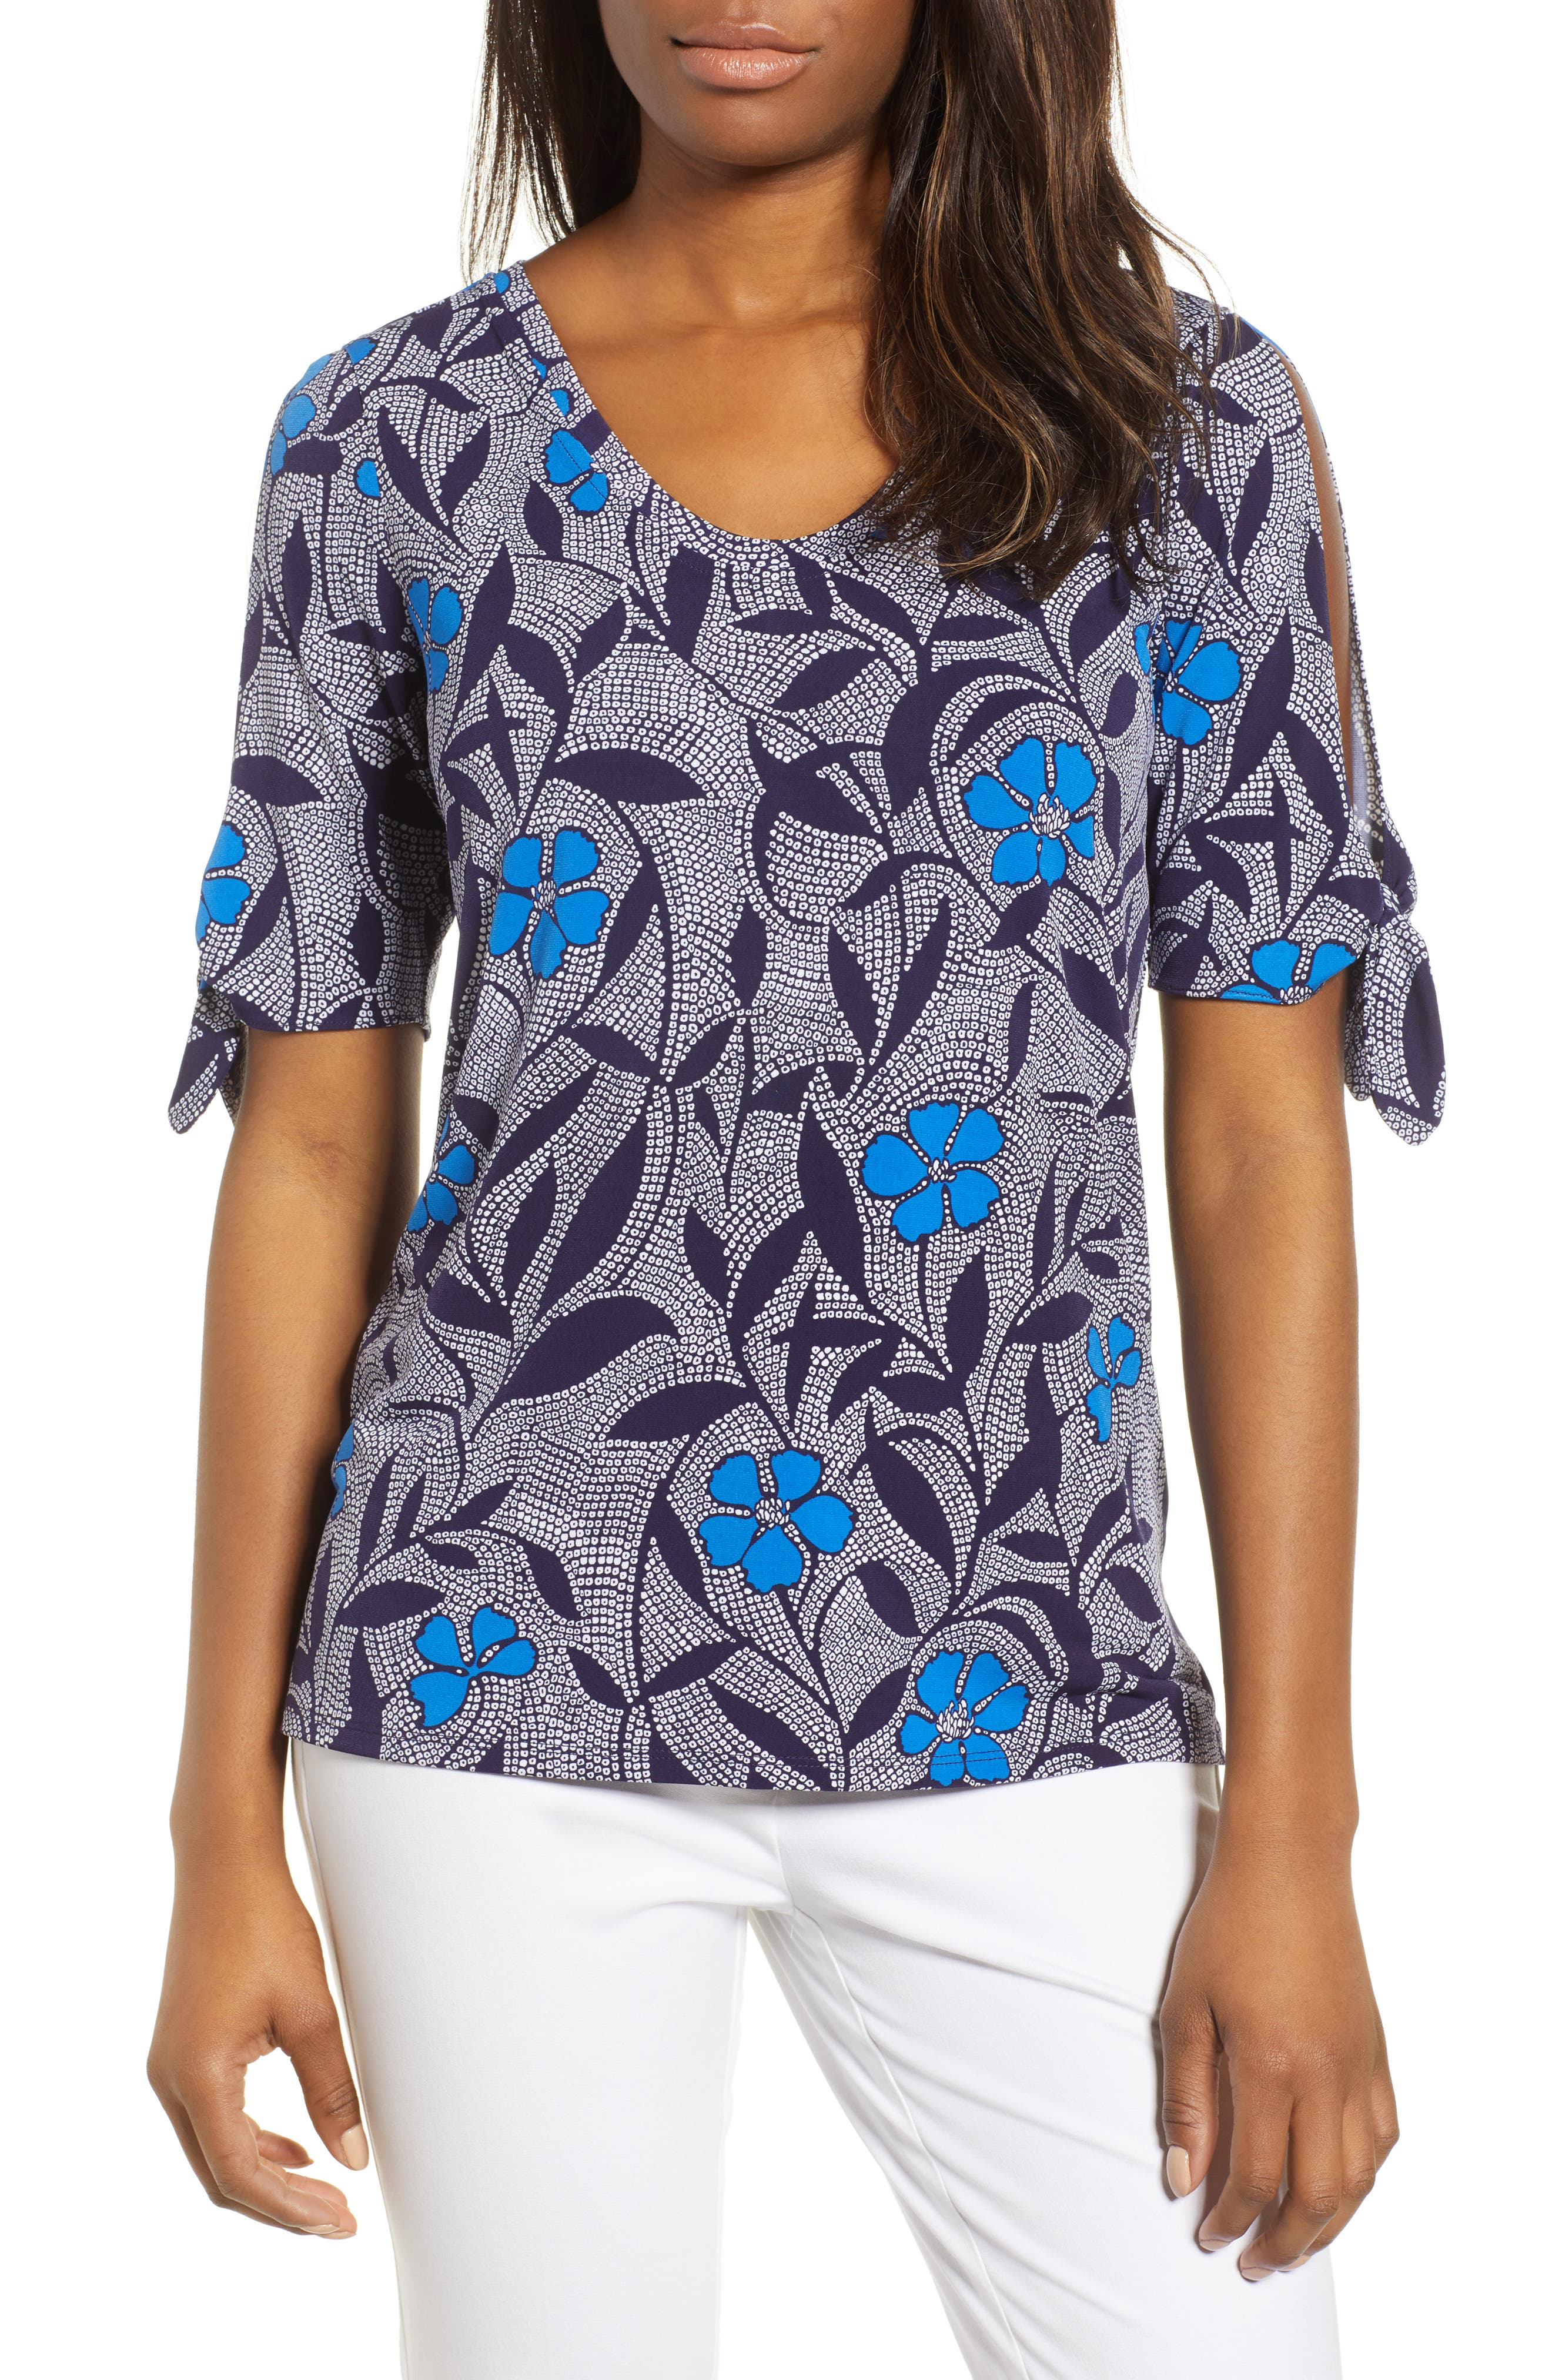 Pacific Bloom Top,                         Main,                         color, Evening Navy